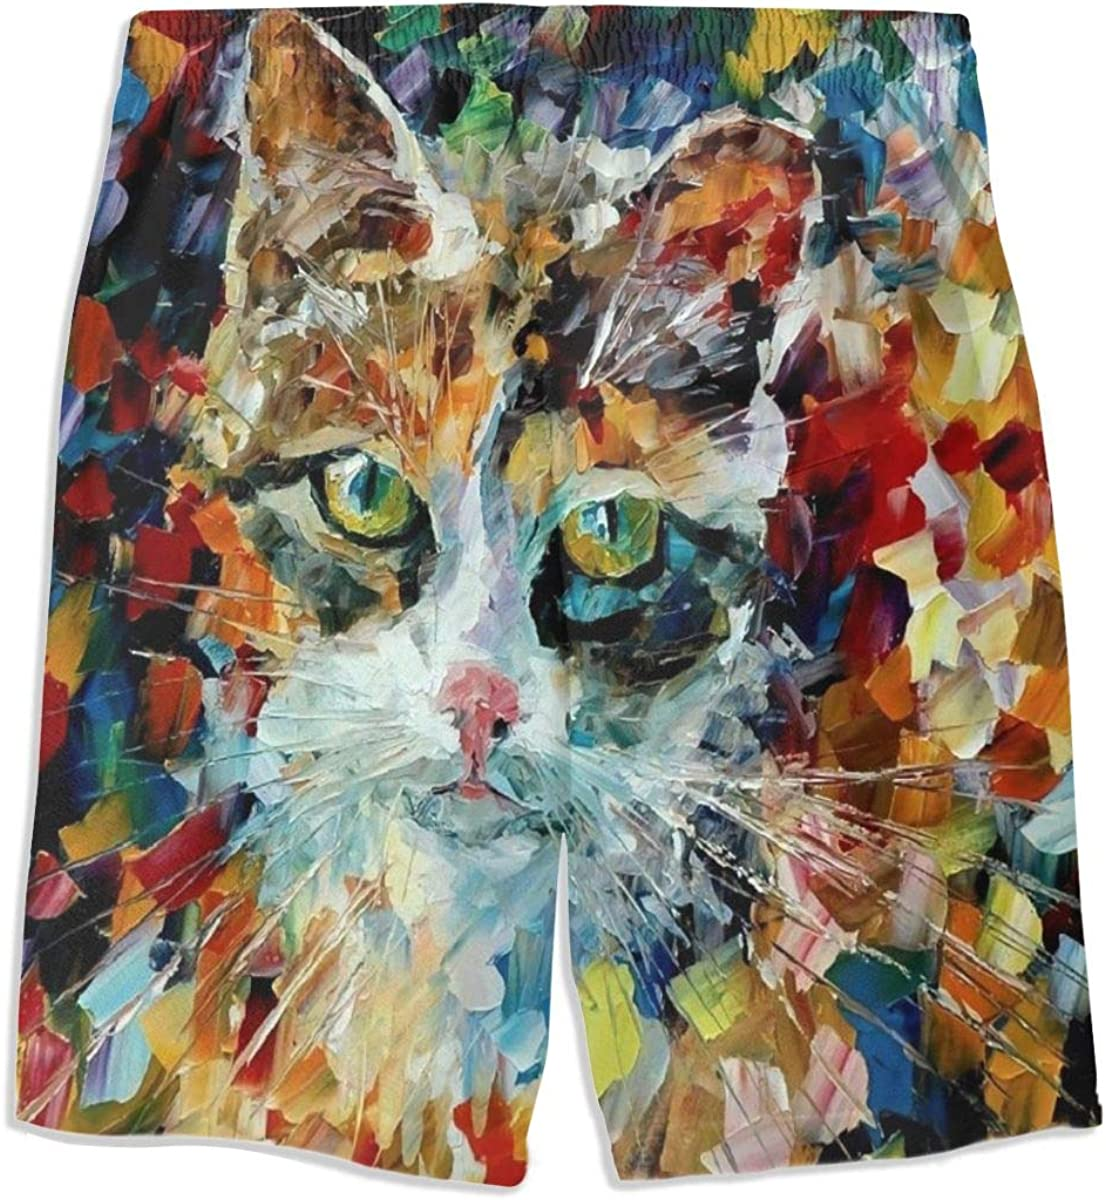 Cat Blue Space Boys Swim Trunks Funny Cool Board Shorts Little Boys Kids Swimsuits 3D Printed Summer S-XL